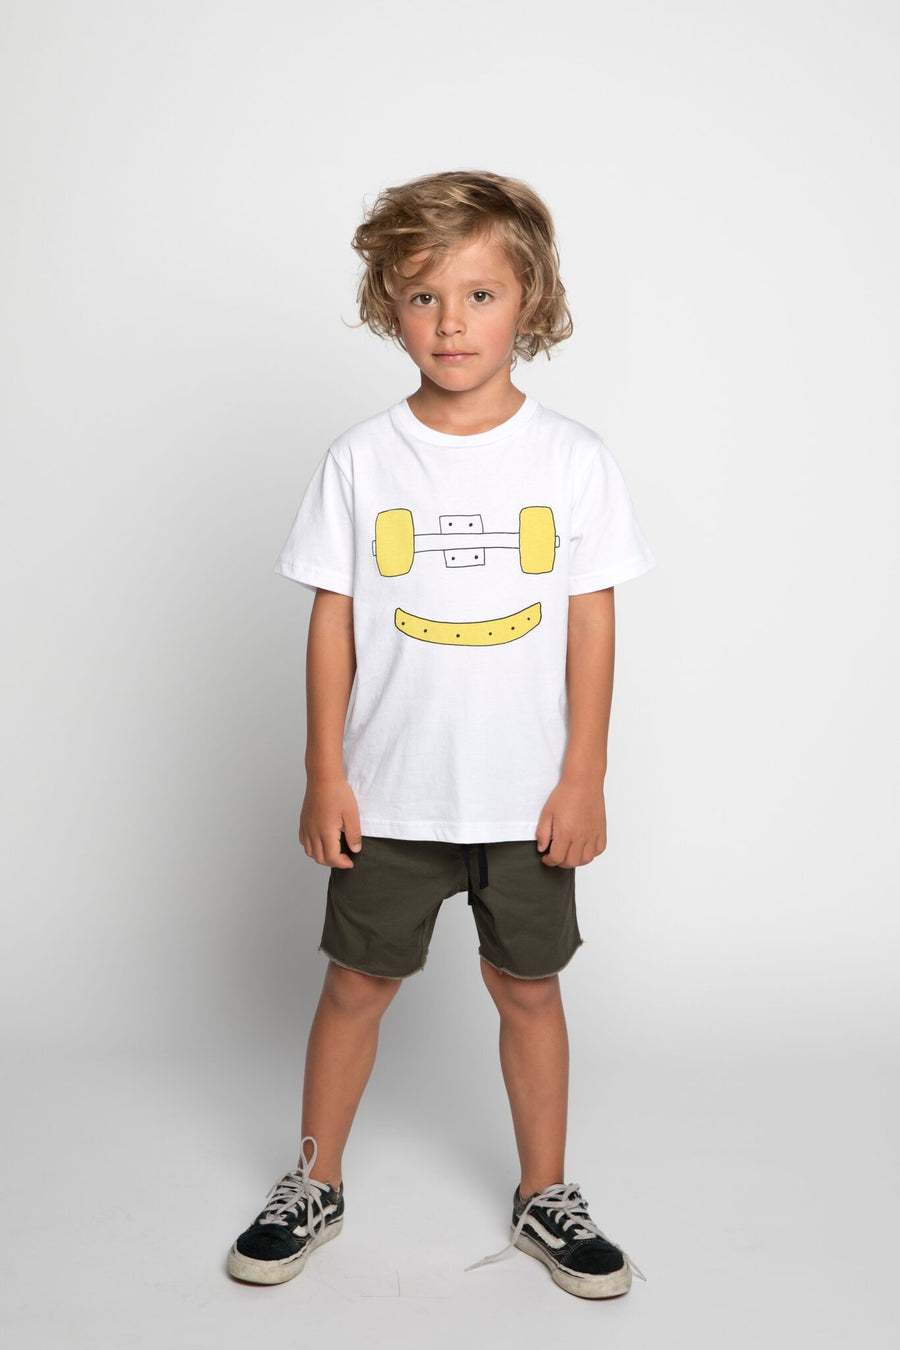 Munster Kids Truck Grin Tee - Tiny People Cool Kids Clothes Byron Bay